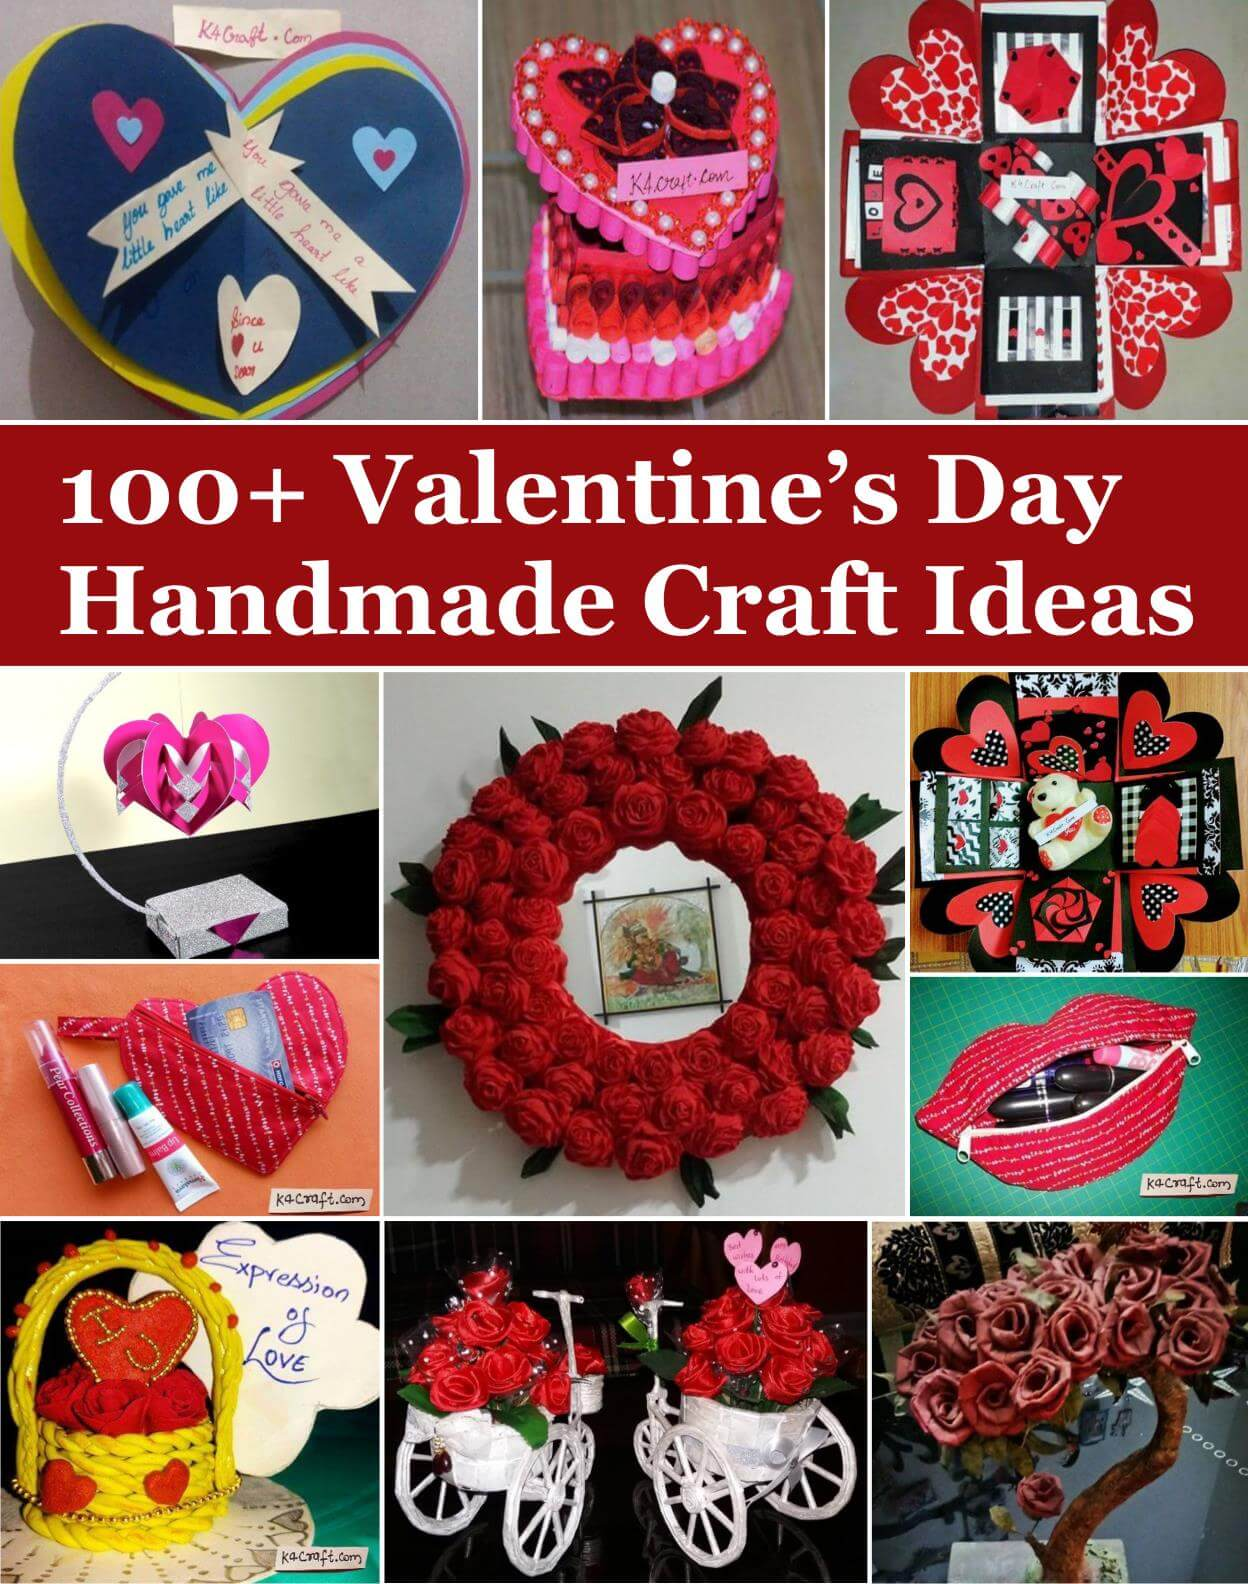 Valentine's Day Handmade Craft Ideas